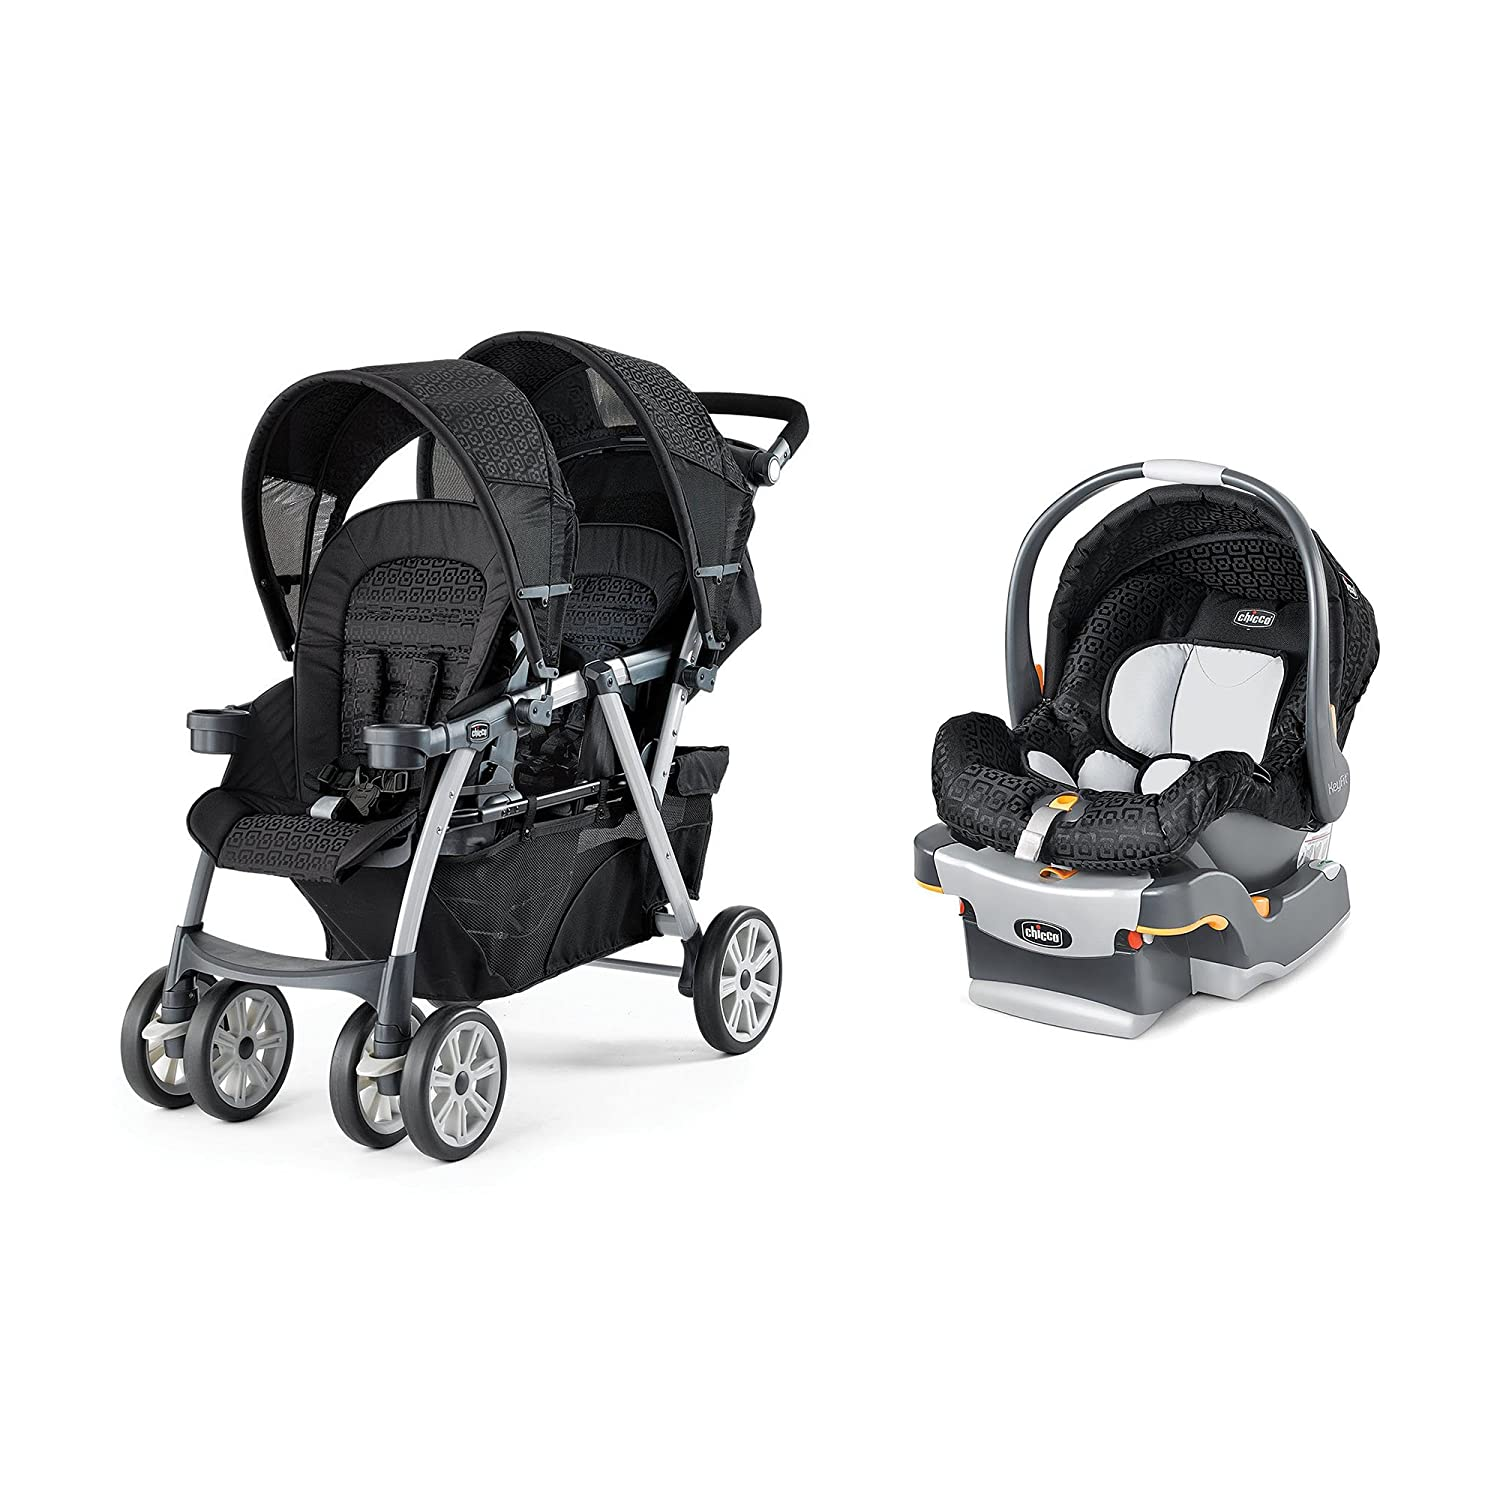 Chicco Cortina Together Travel System Double Stroller Keyfit Infant Car Seat